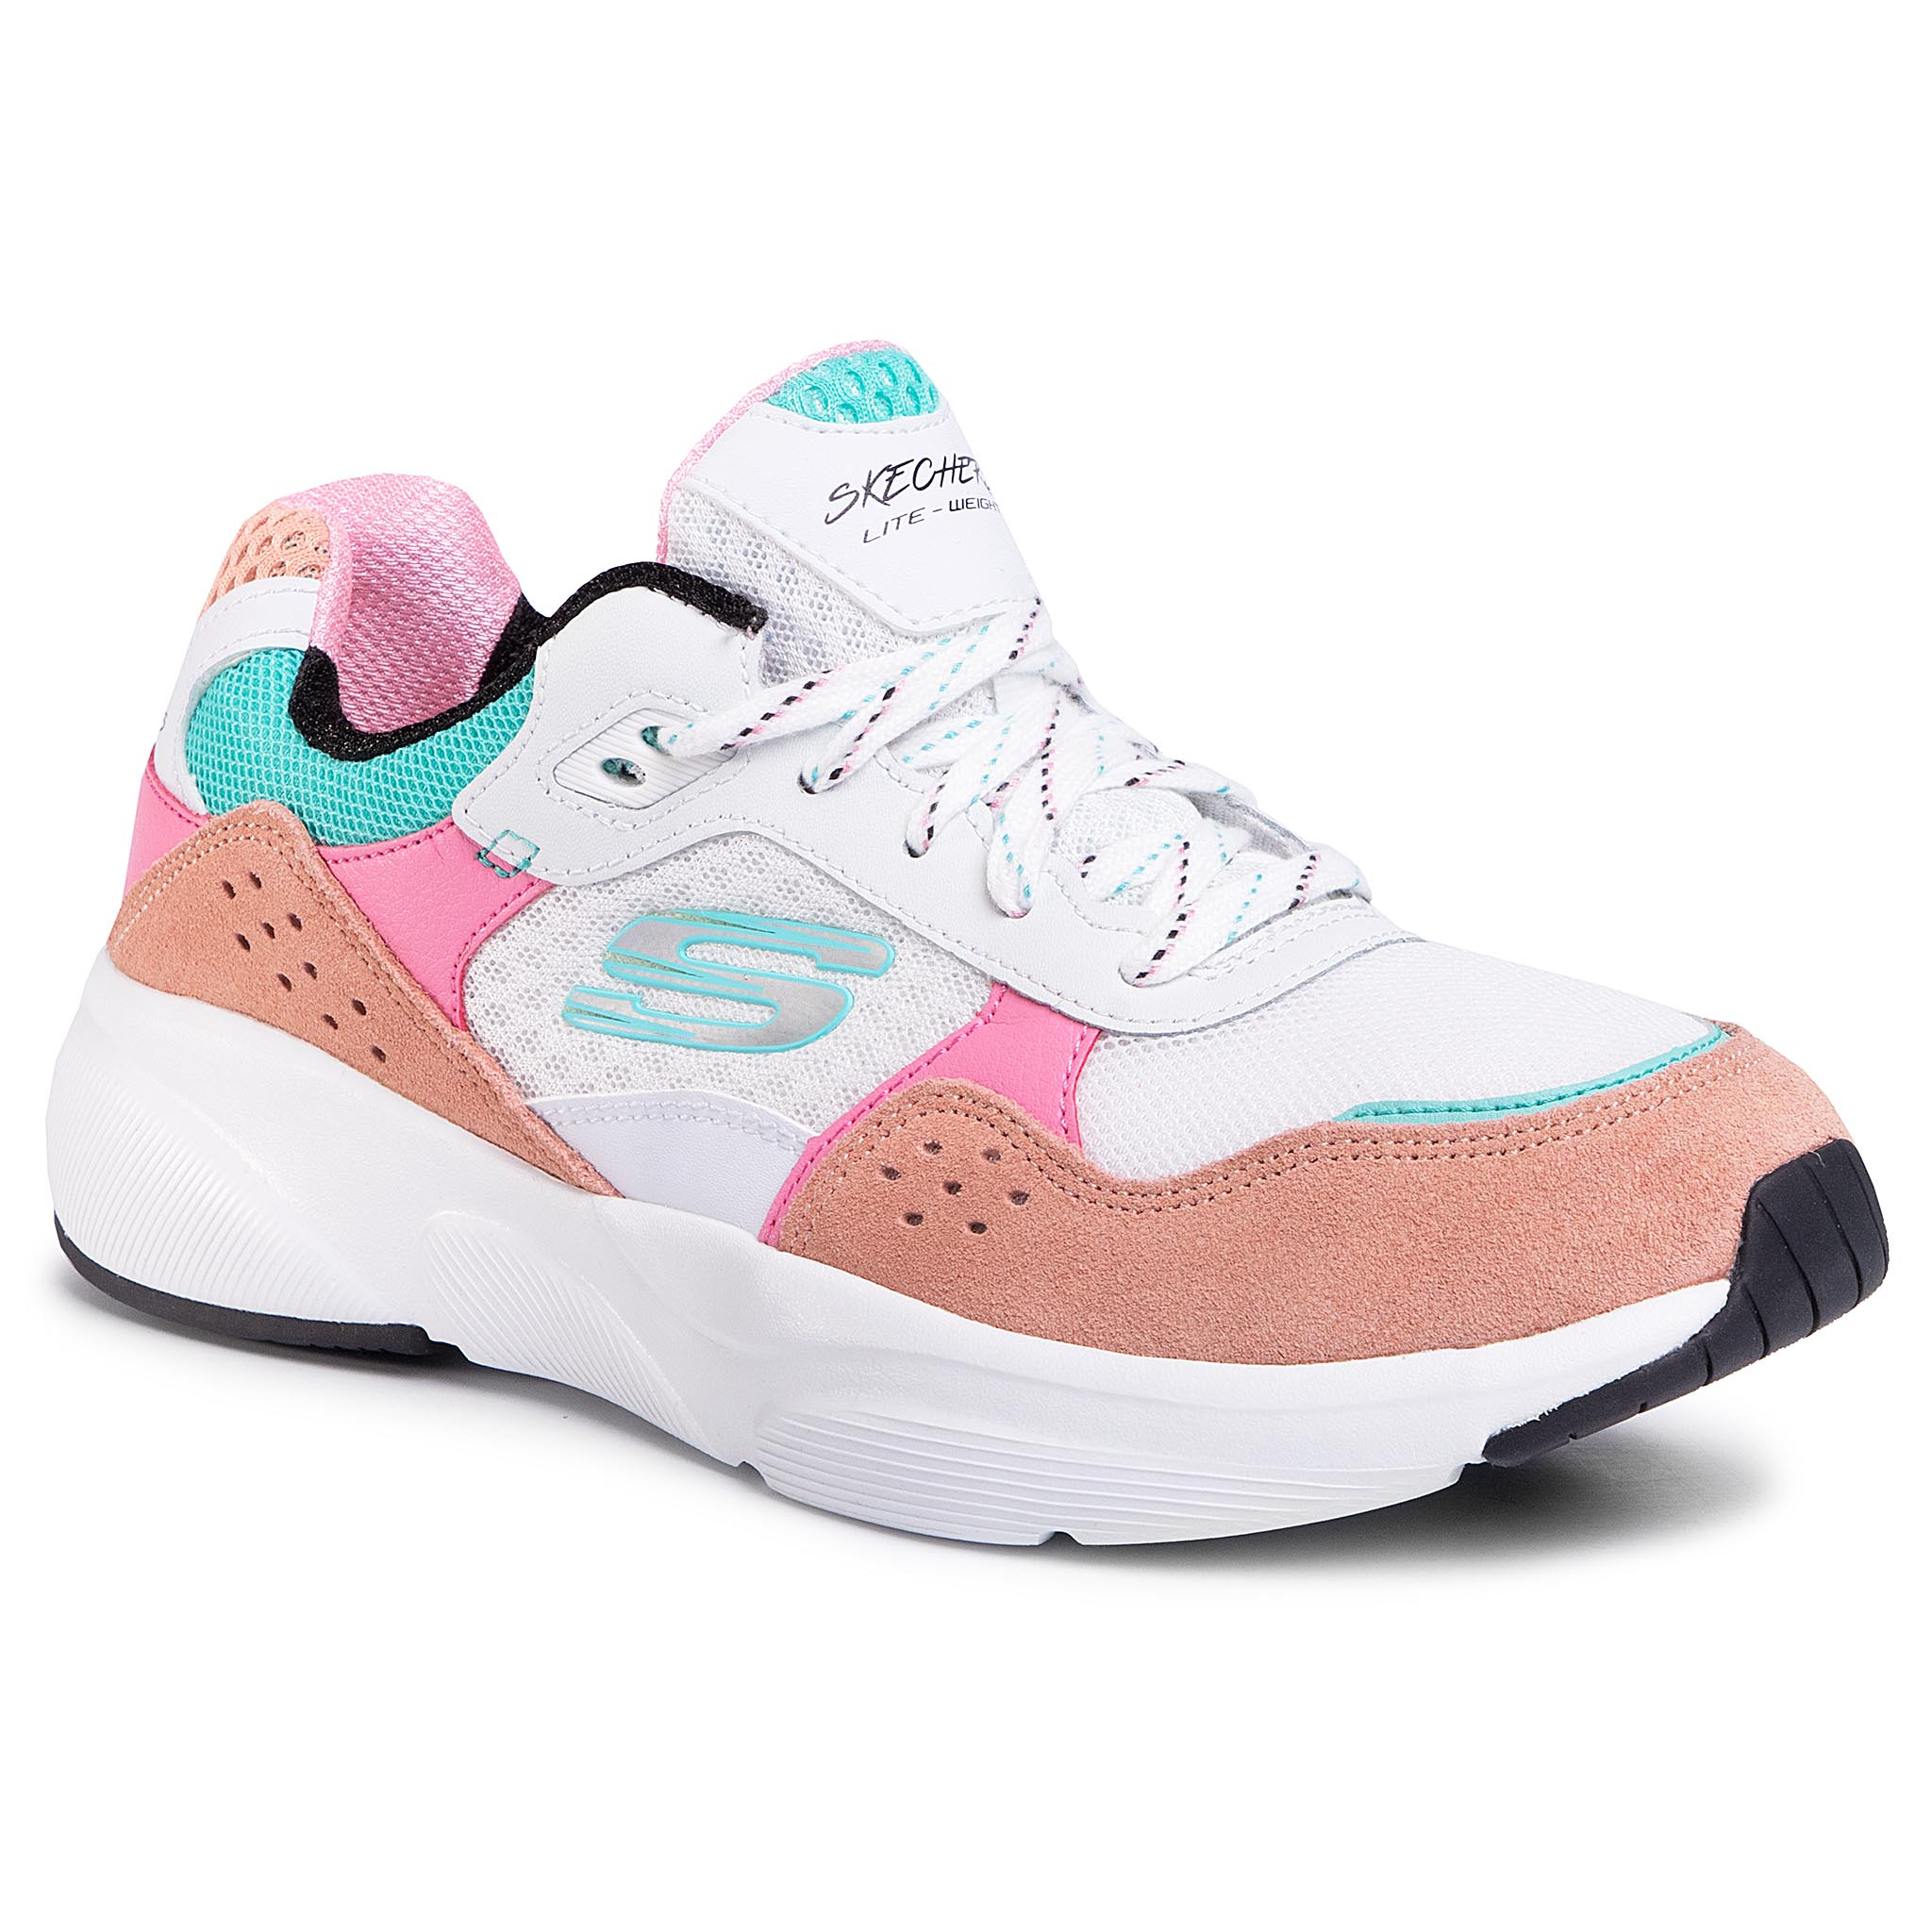 Sneakers SKECHERS - Charted 13019/WPKB White/Pink/Blue